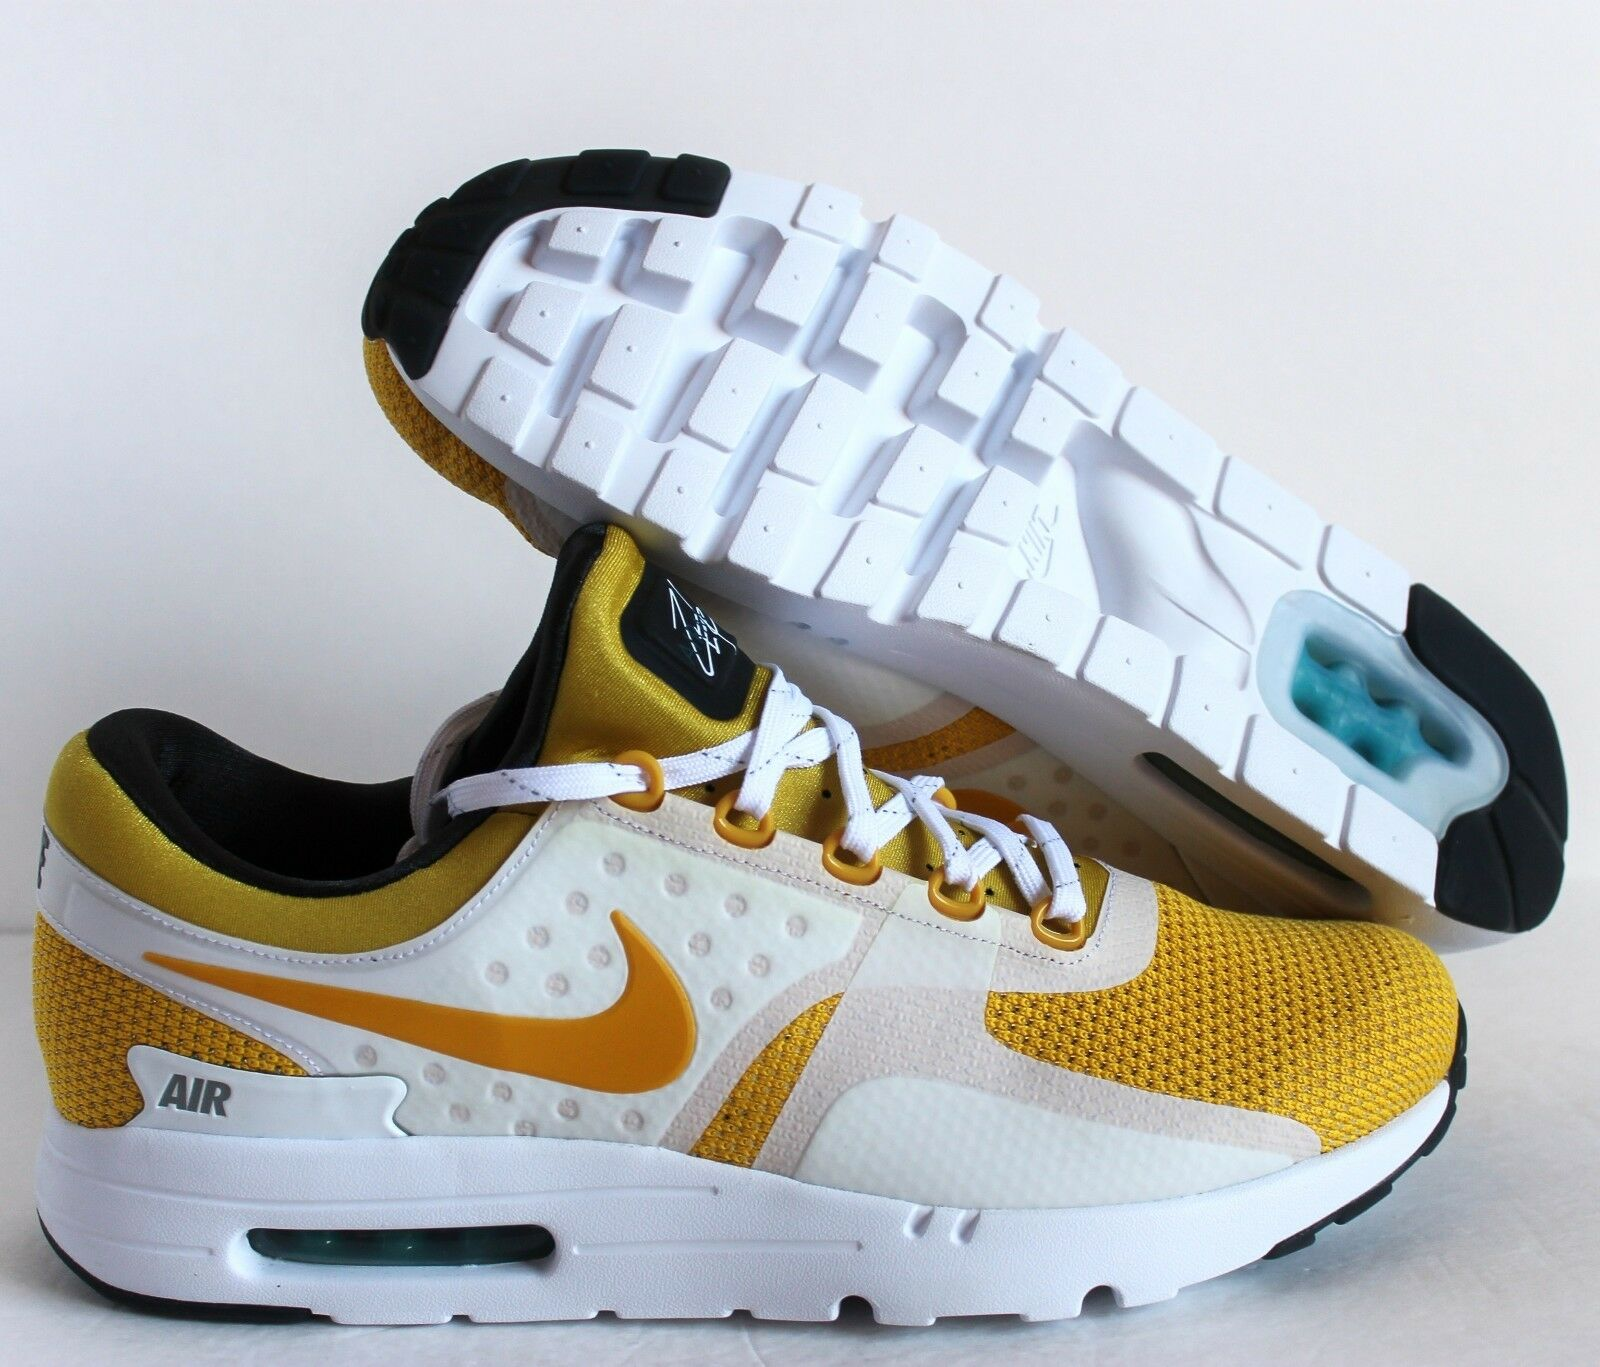 NIKE MEN AIR MAX ZERO QS WHITE-VIVID SULFUR YELLOW-ANTHRACITE SZ 14 [789695-100]